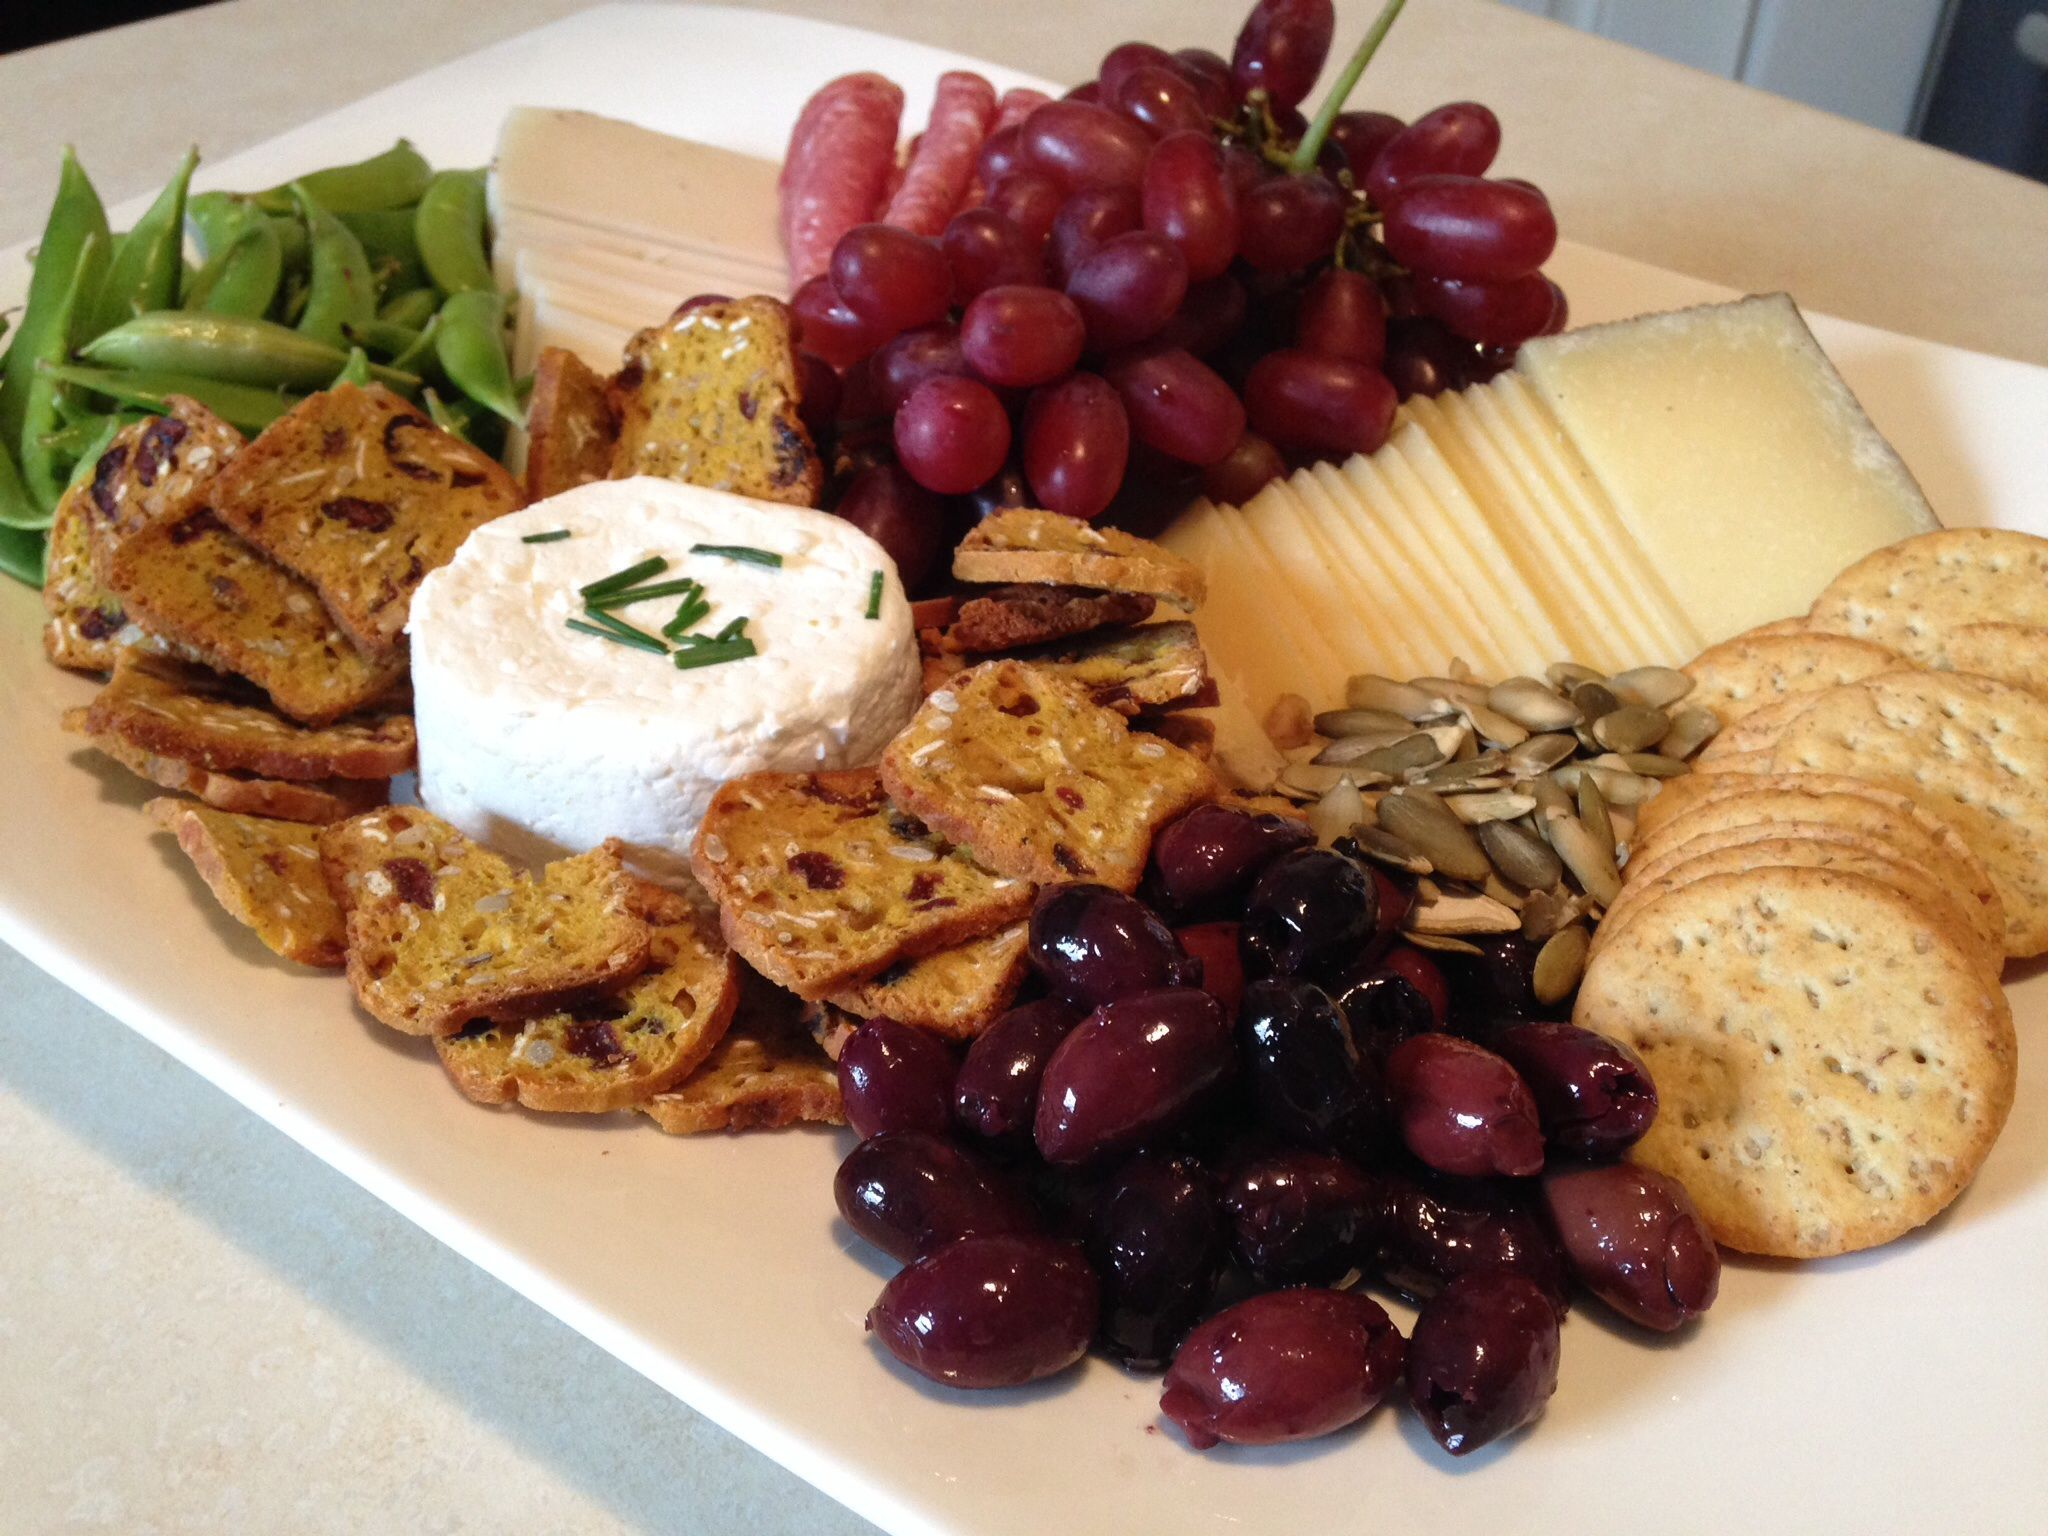 cheese platter presentation | Cheese Platter Presentation For this plate included fruit & cheese platter presentation | Cheese Platter Presentation For this ...